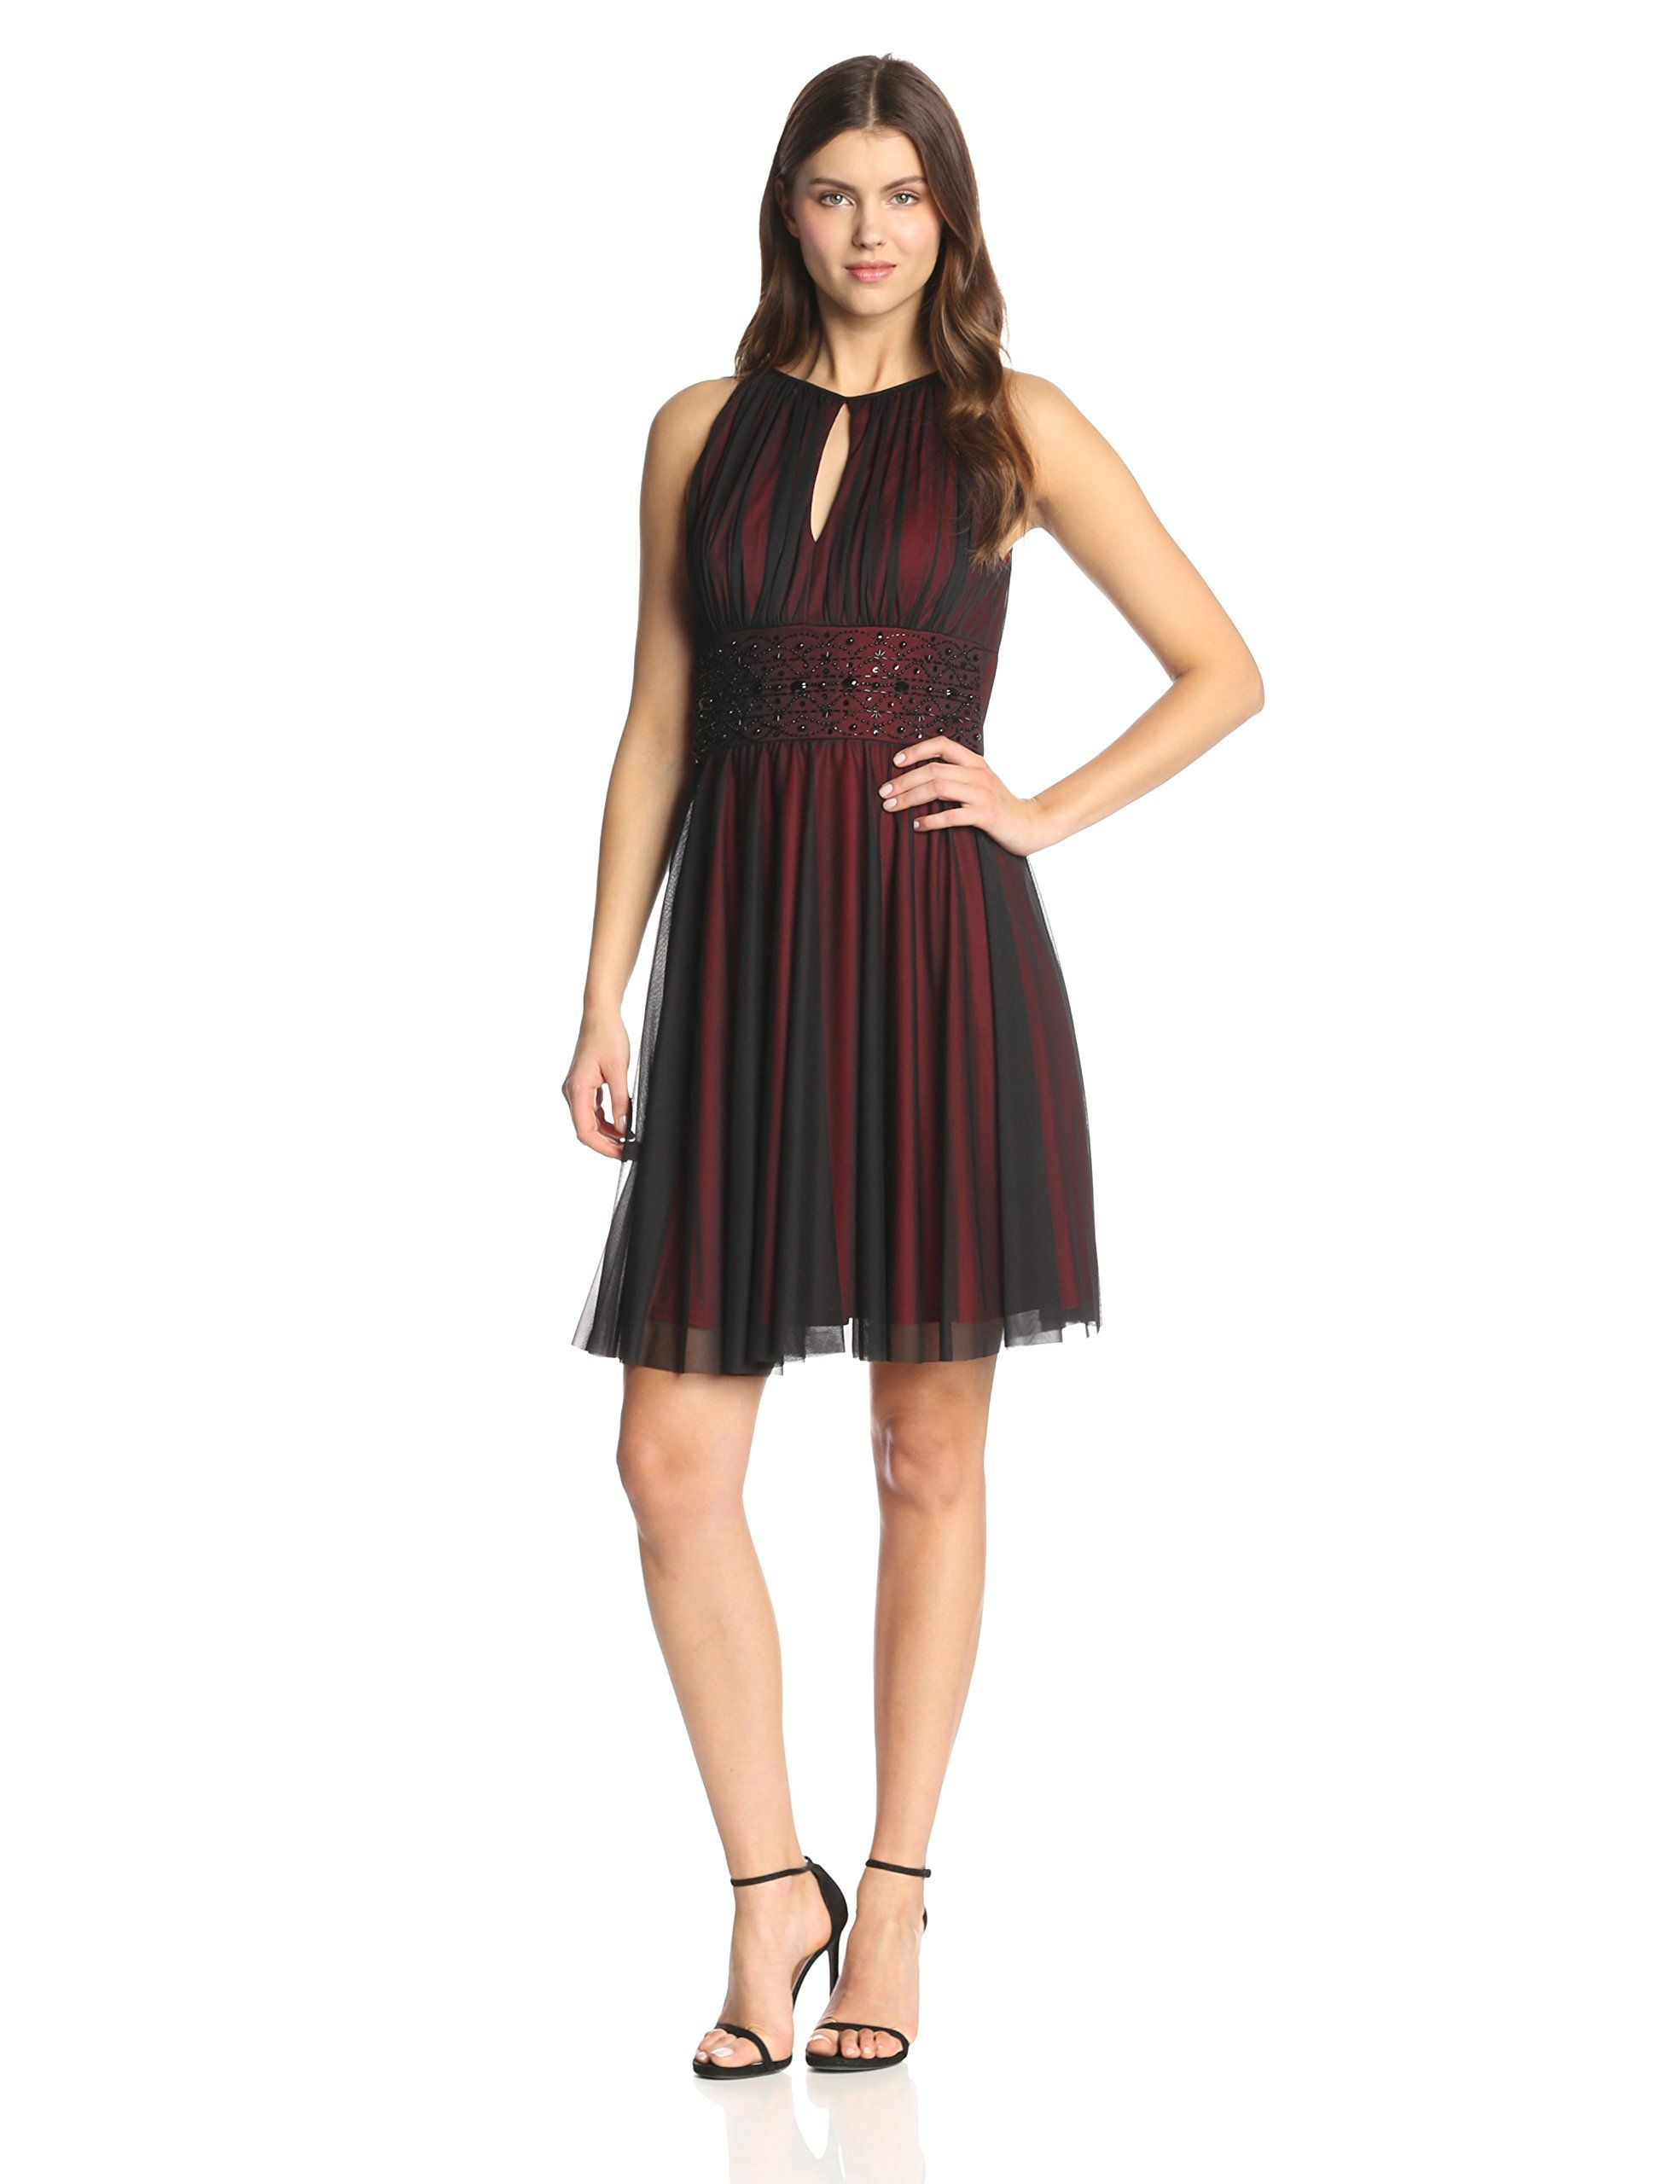 b578ac7858bb Amazon.com: Jessica Howard Women's Petite Shirred Beaded Keyhole Dress:  Clothing